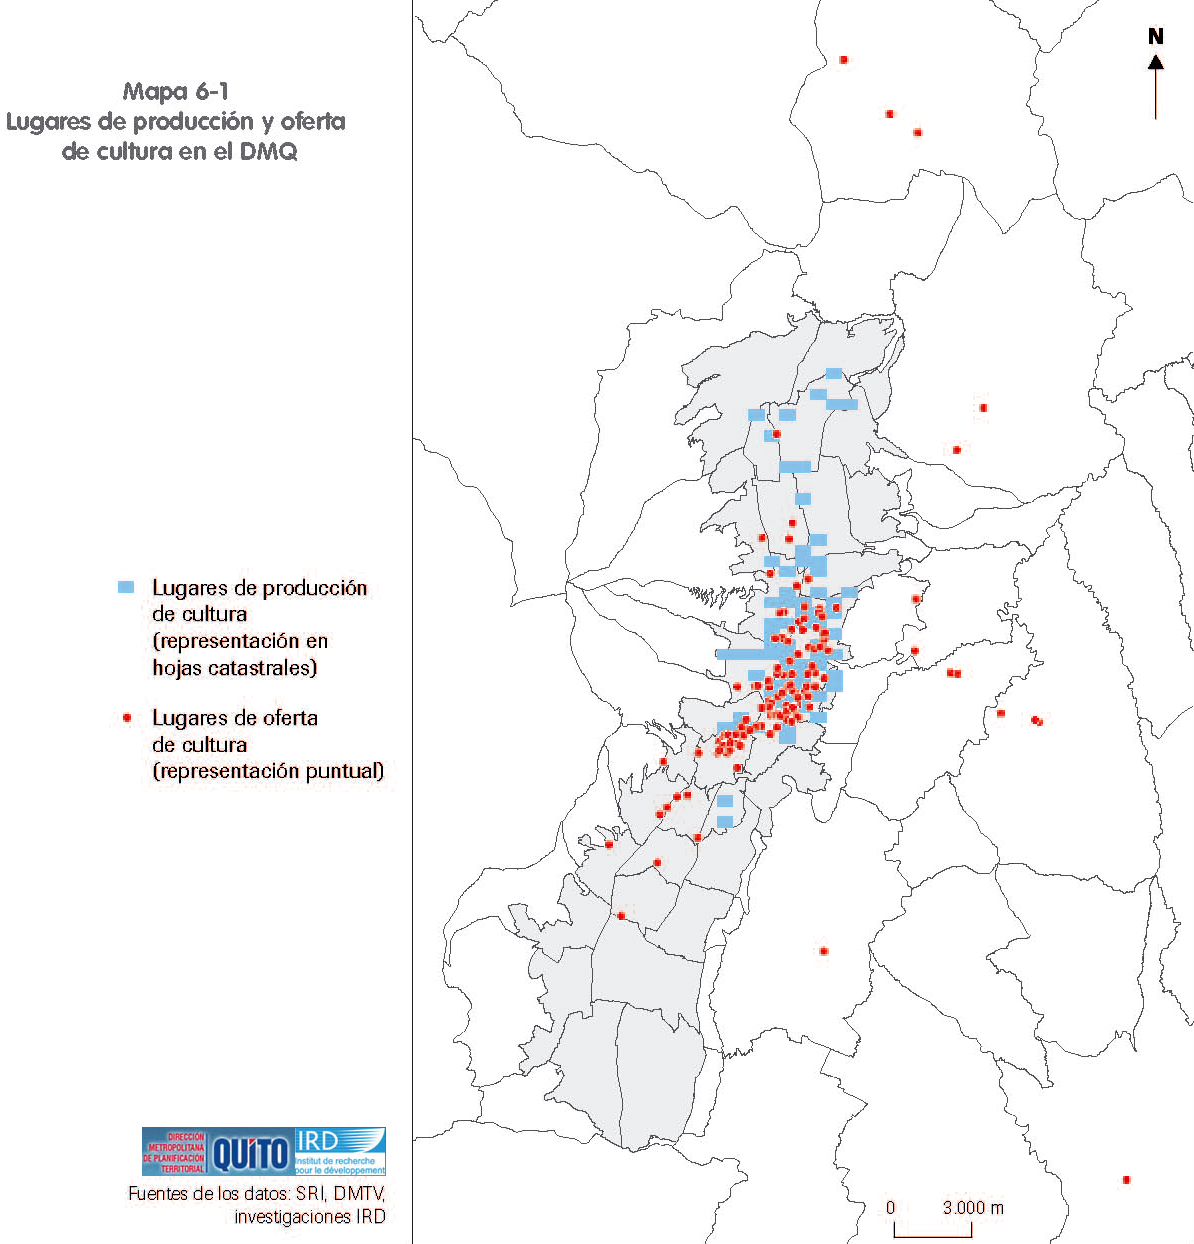 Cultural production and offer in the Metropolitan District of Quito 2001